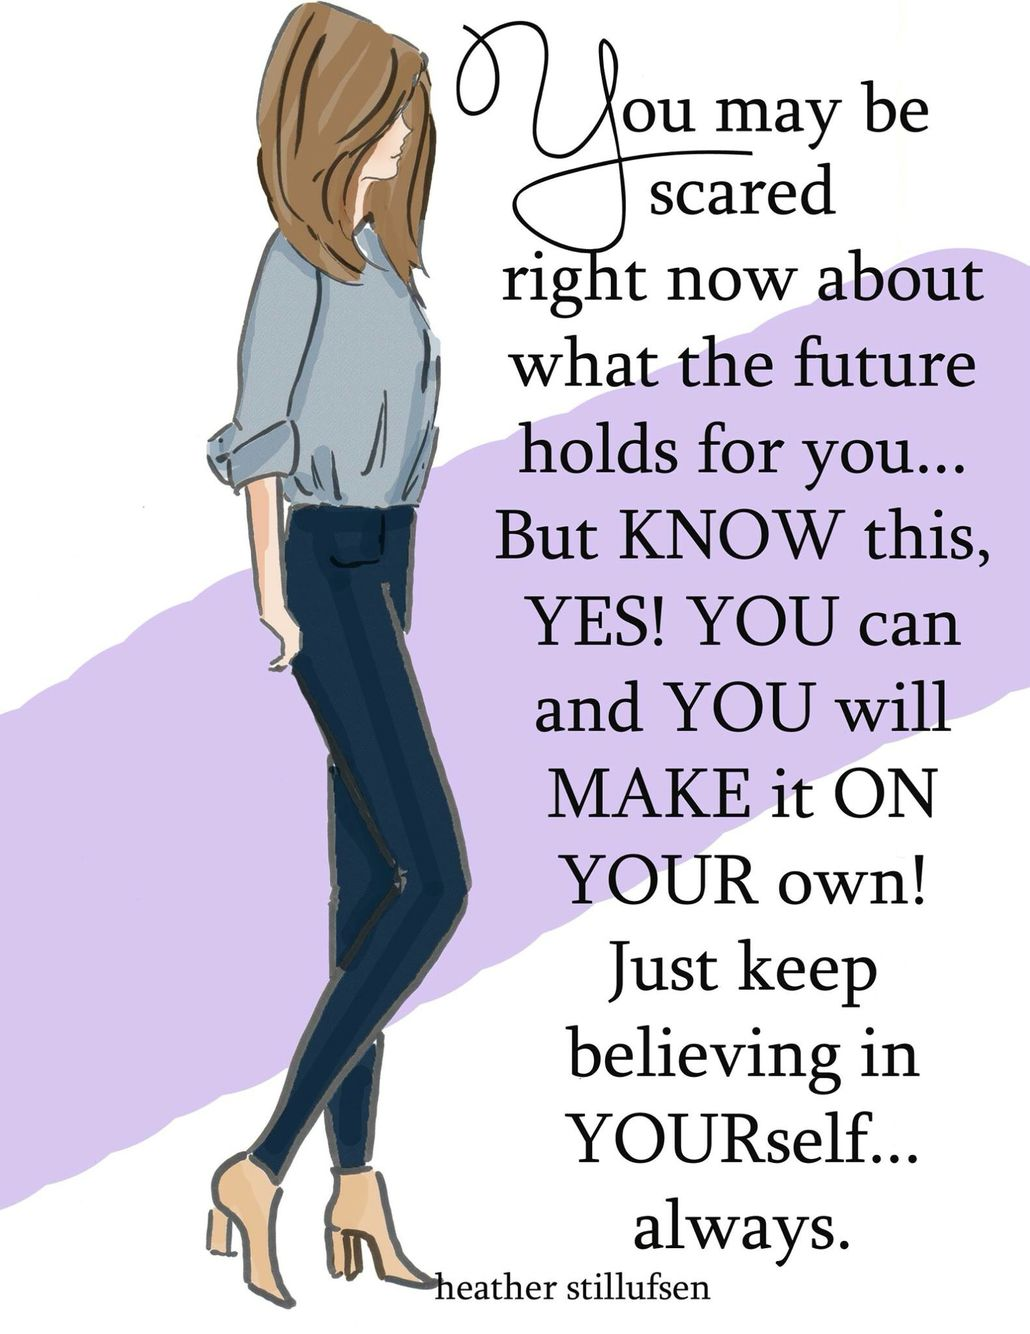 You may be scared about making it on YOUR own, but know this.....YES YOU CAN and YES YOU will!!! - xx